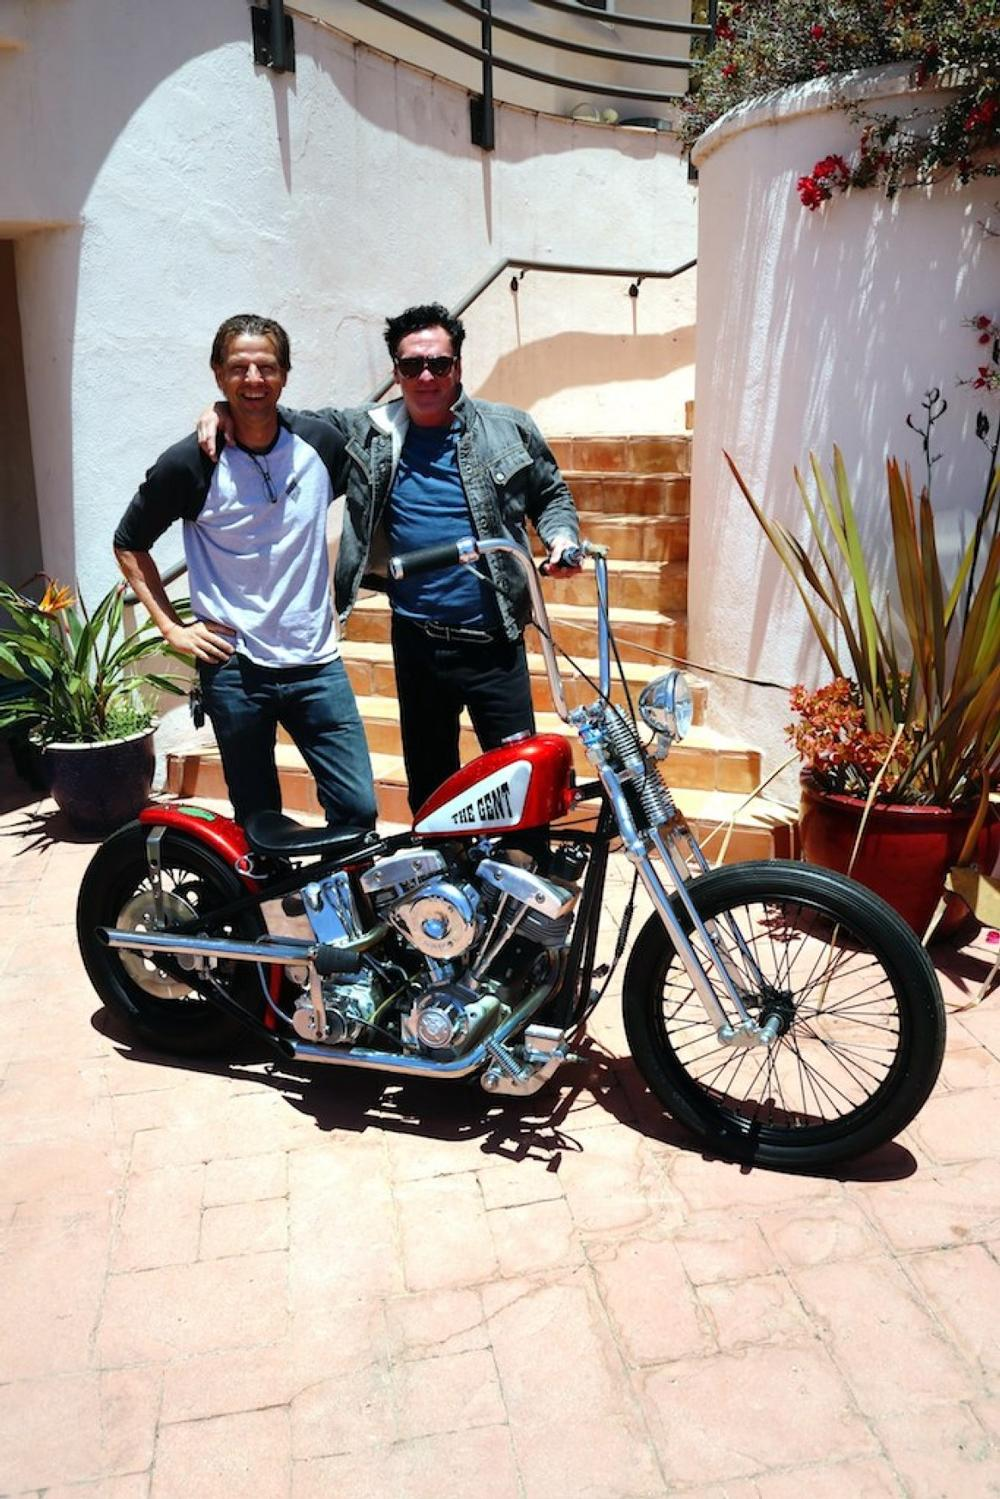 The Gent Built By Movie Bikes Of USA